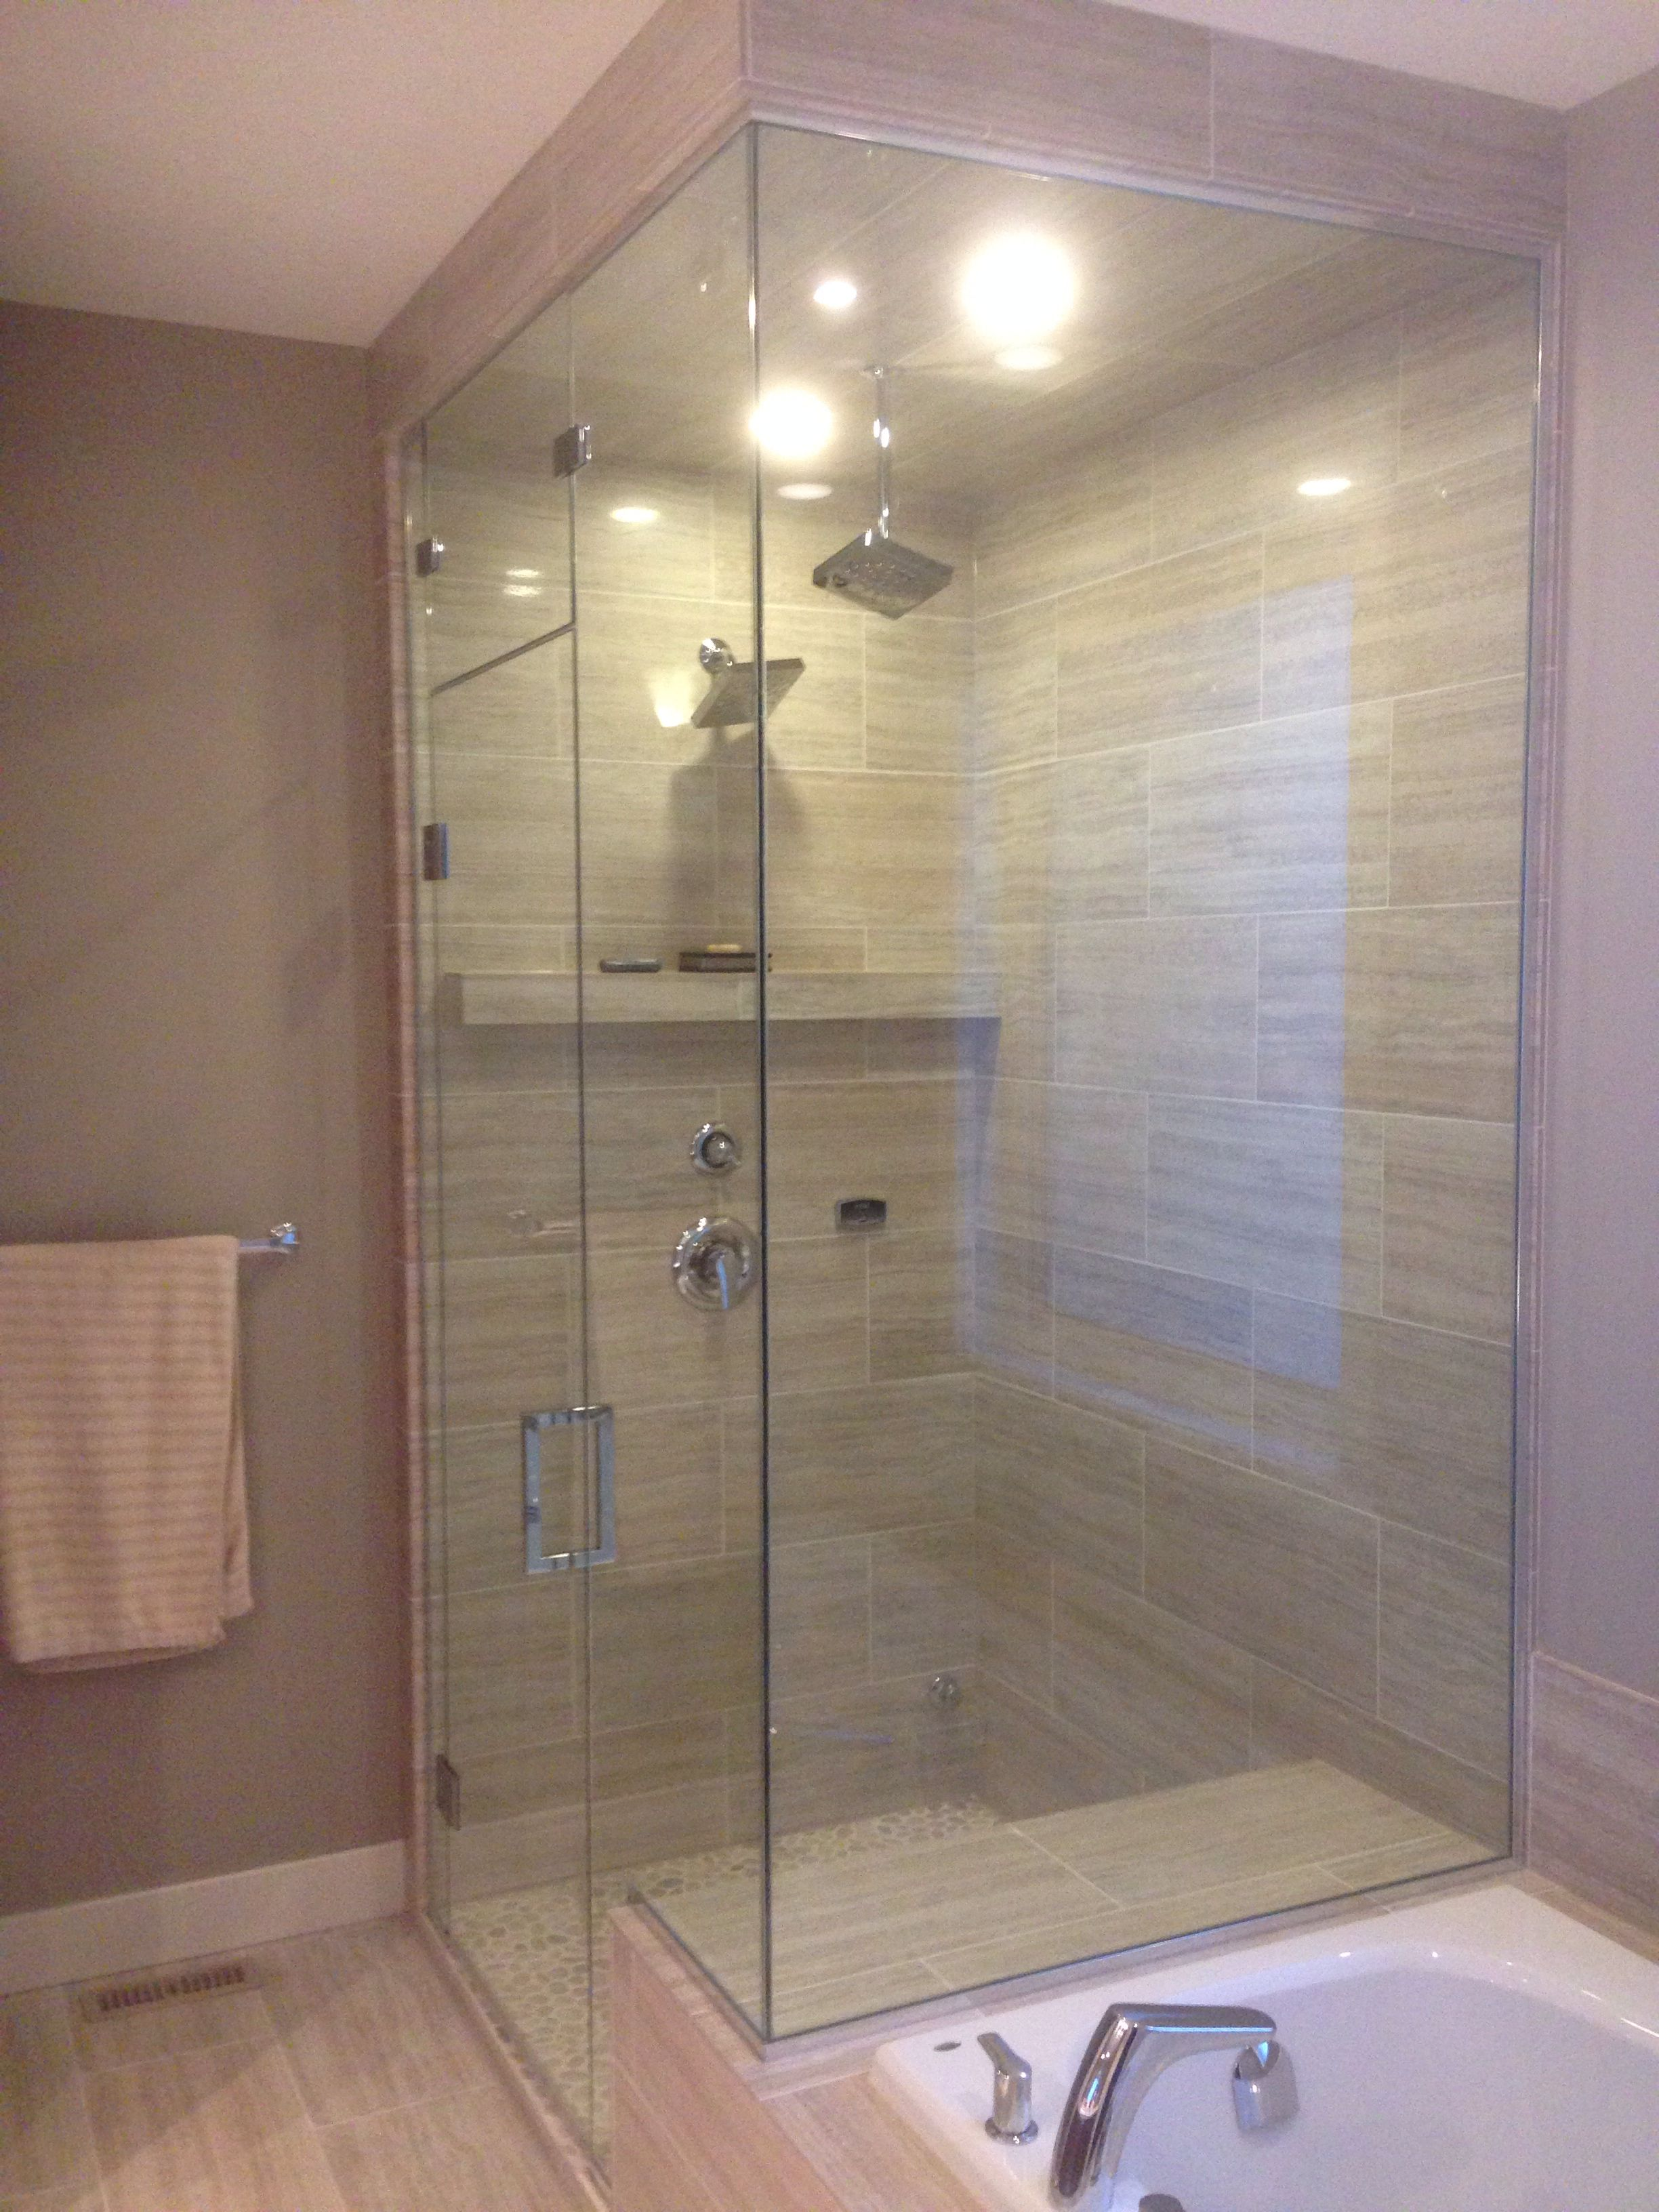 Pin By Julie Fisher On Showers Designed By Accurate Glass And Lock Bathrooms Remodel Glass Shower Glass Shower Doors